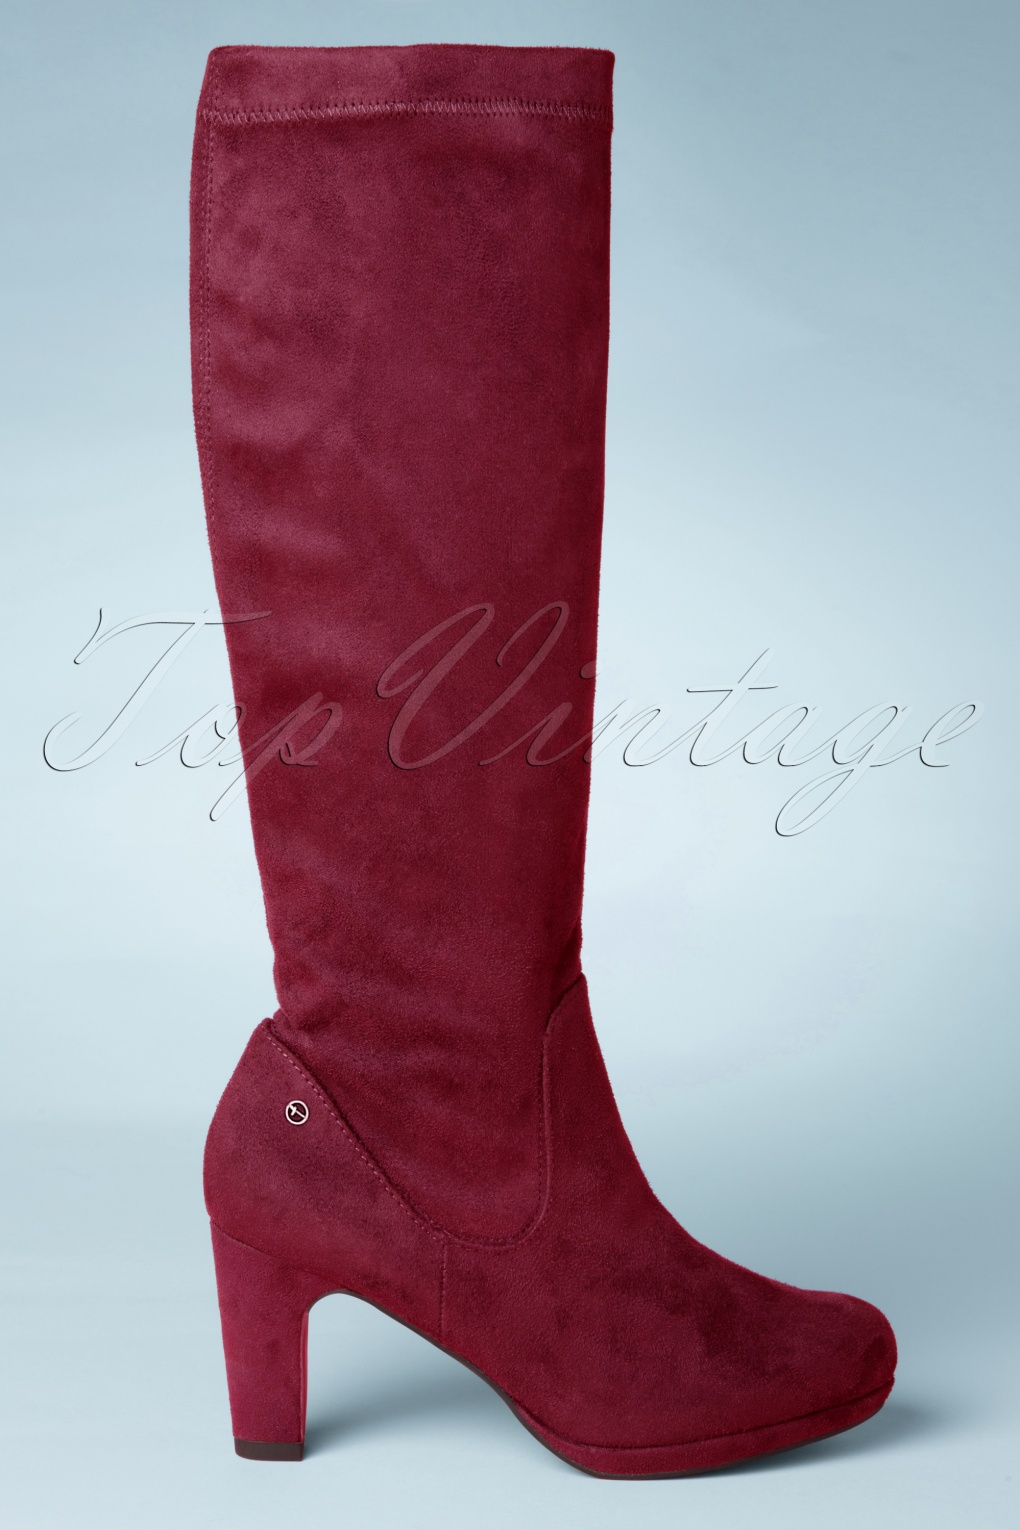 Retro Boots, Granny Boots, 70s Boots 60s Priscilla High Suedine Boots in Burgundy £60.89 AT vintagedancer.com